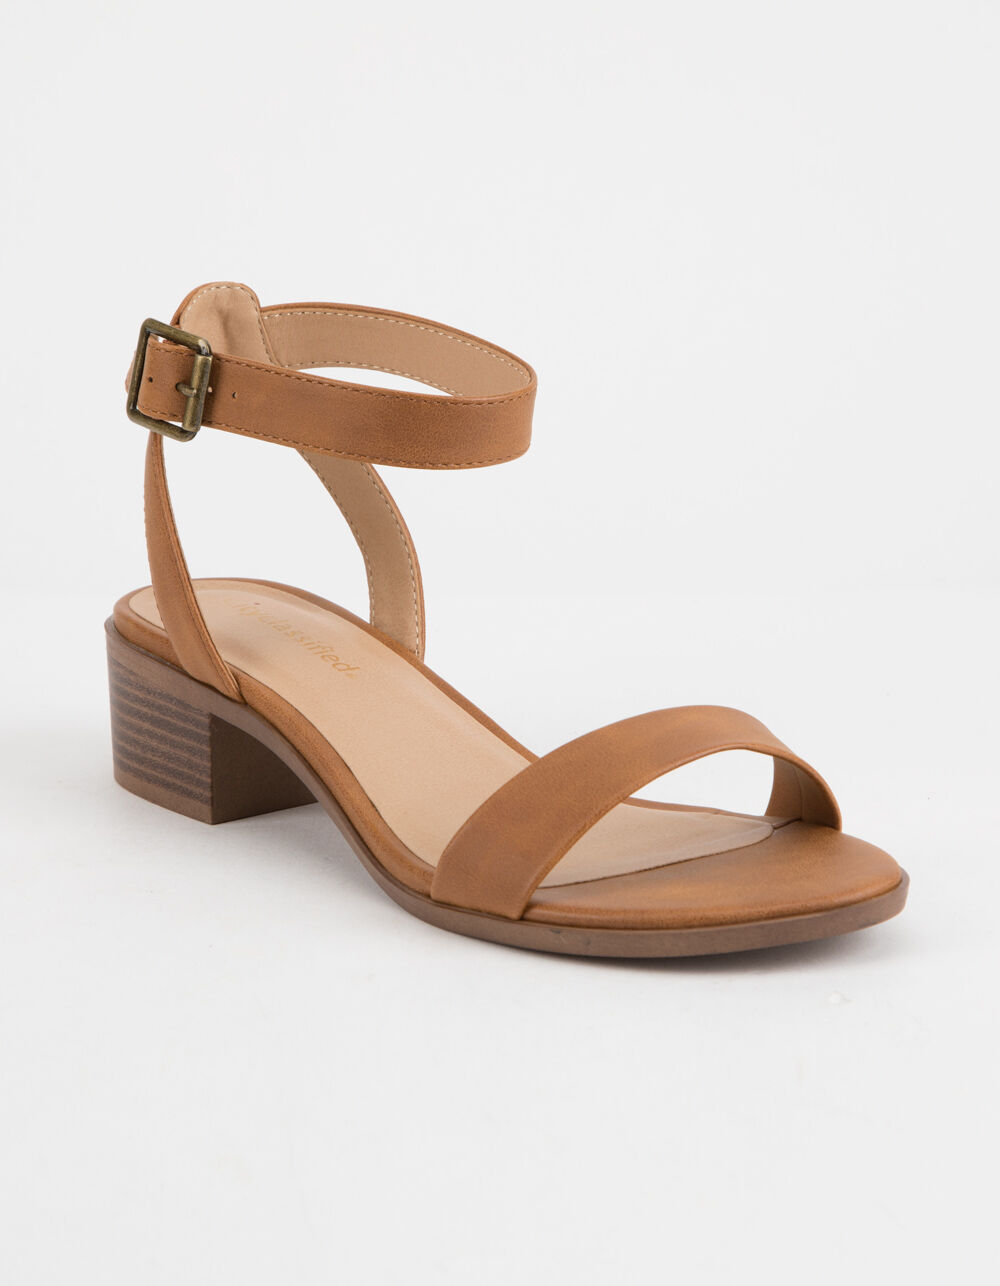 Image of CITY CLASSIFIED ANKLE STRAP COGNAC HEELED SANDALS